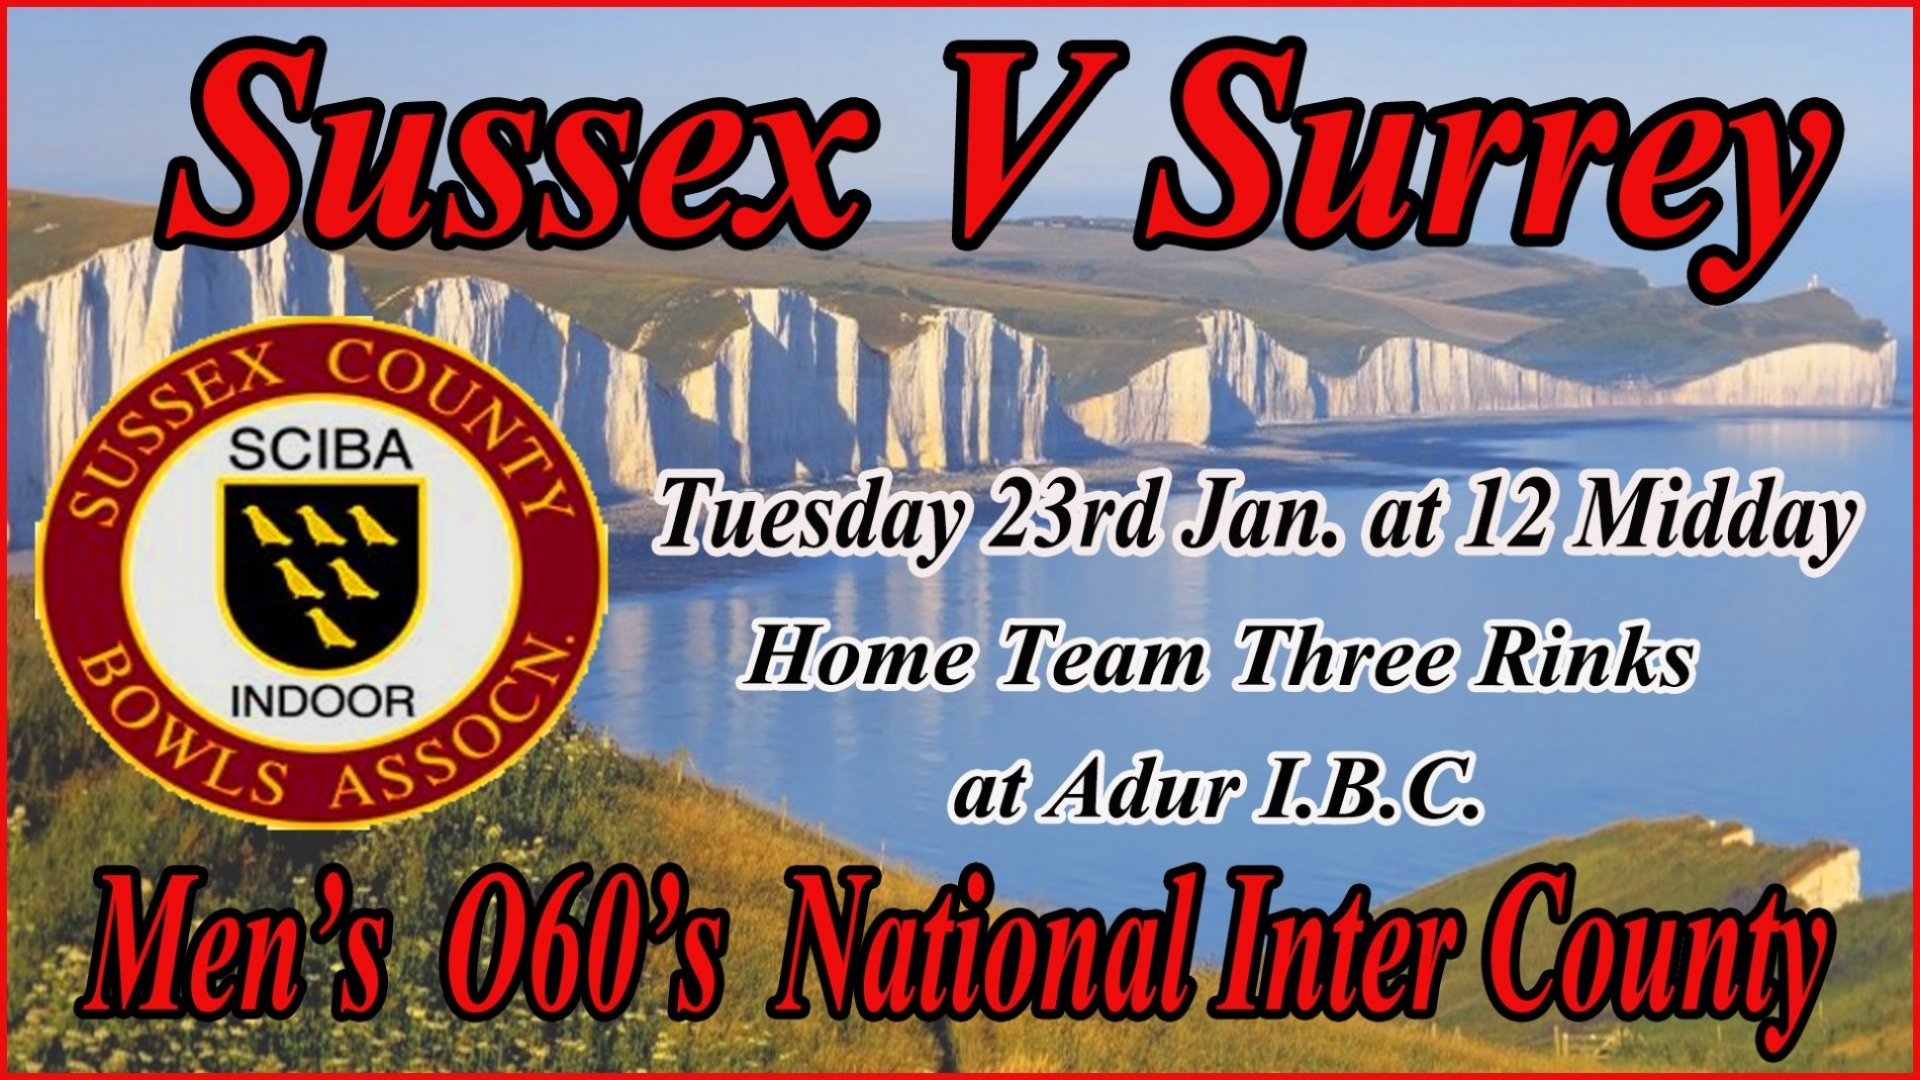 Men's Over 60's National Inter County - Sussex v Surrey - 23rd Jan 2018